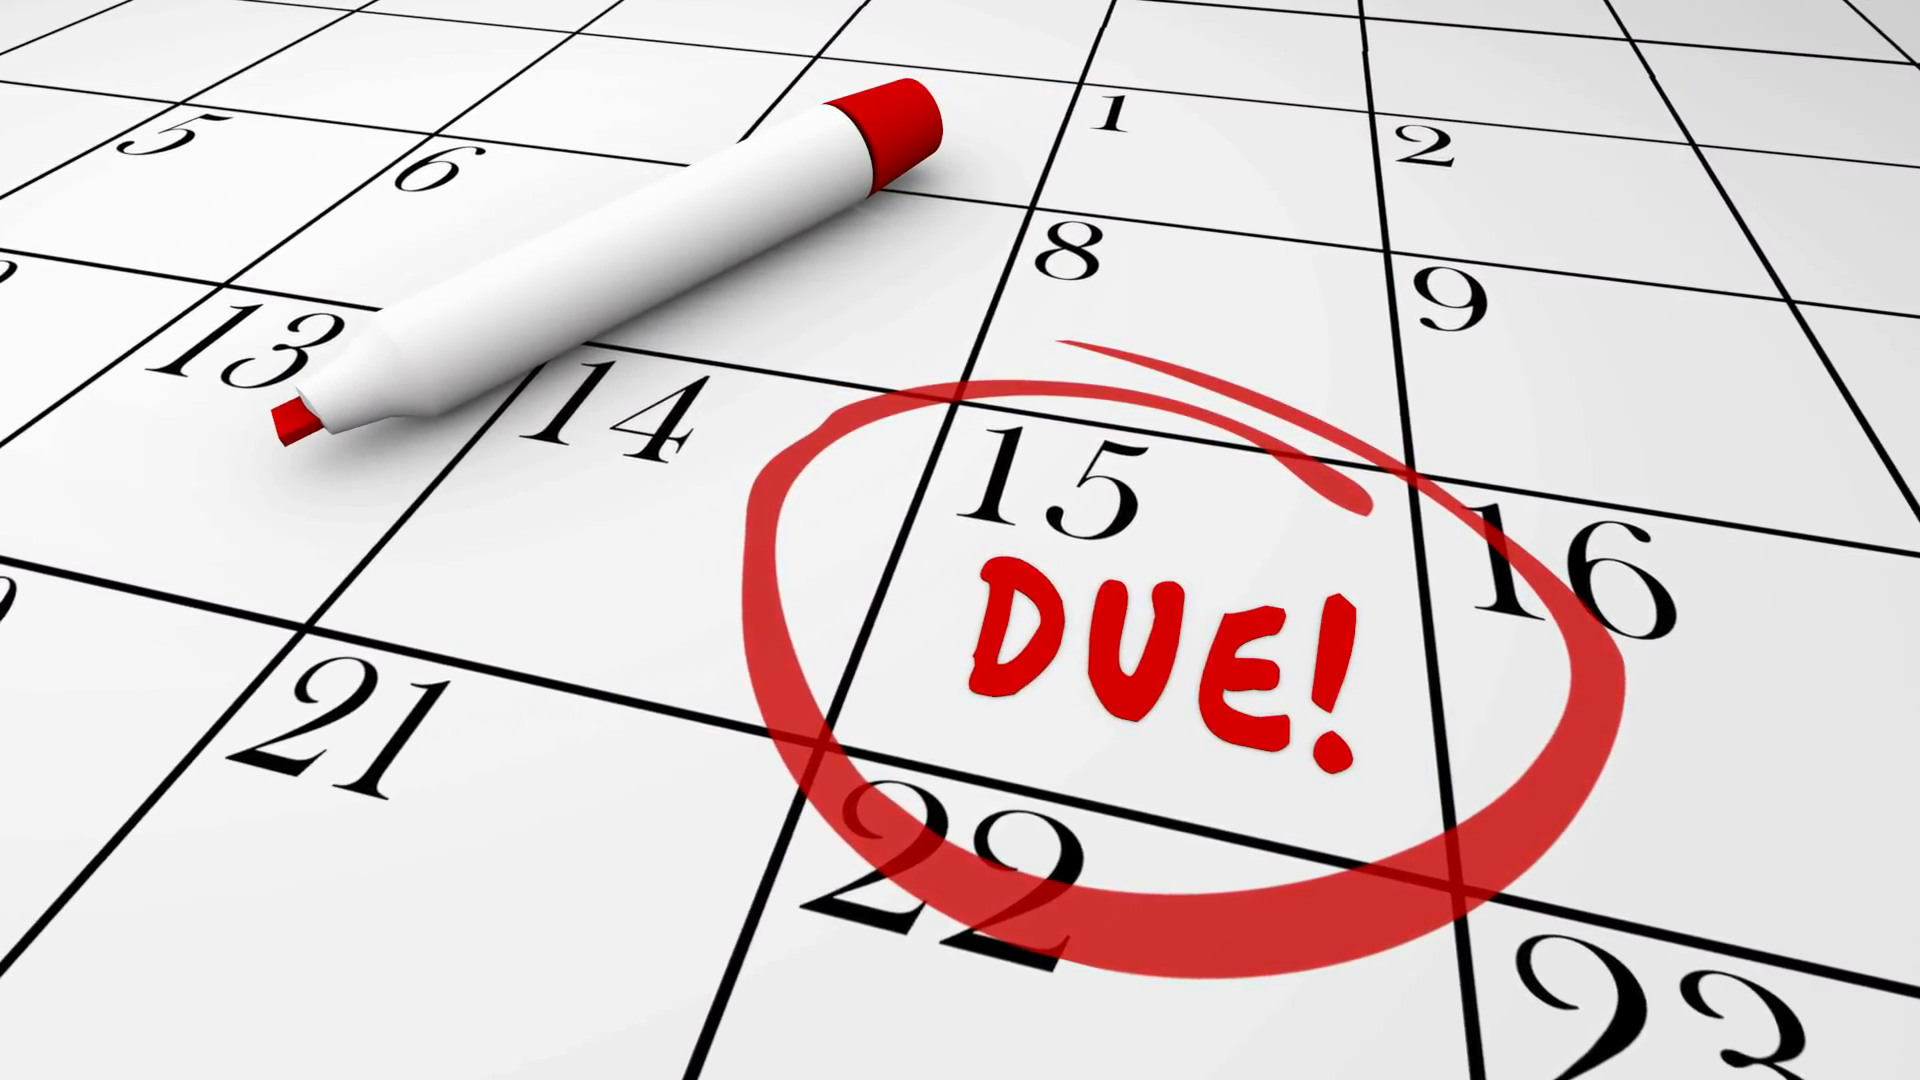 due-day-date-circled-calendar-deadline-baby-taxes_eyyvgvrh__F0014.png